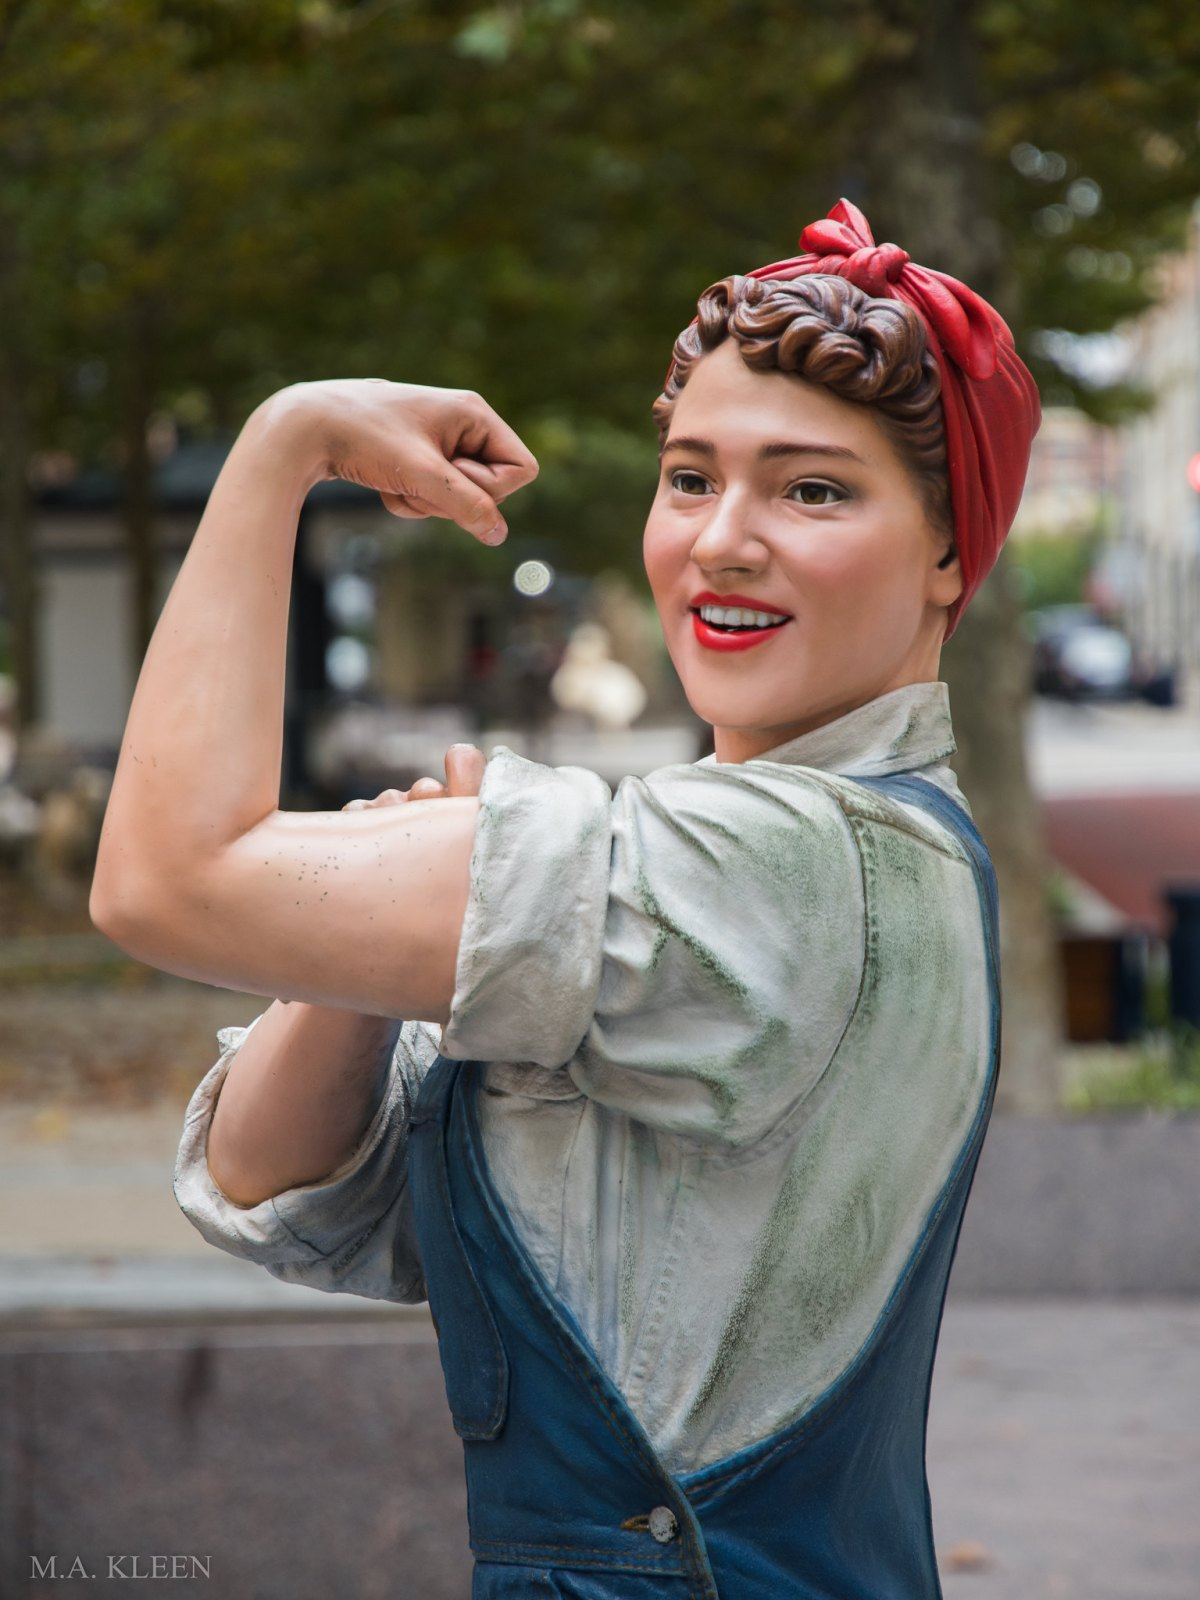 Statue of Rosie the Riveter by artist Ivan Schwartz in National Harbor, Maryland.